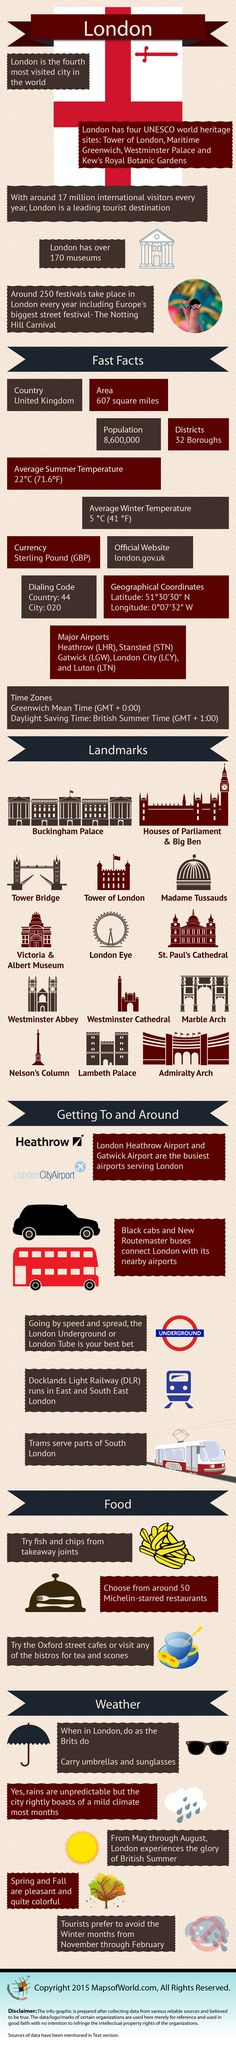 This cool #Infographic decodes #London for travelers! It helps you with fasts facts about the city, when to visit, weather, places to visit, hotels, getting around, and much more!